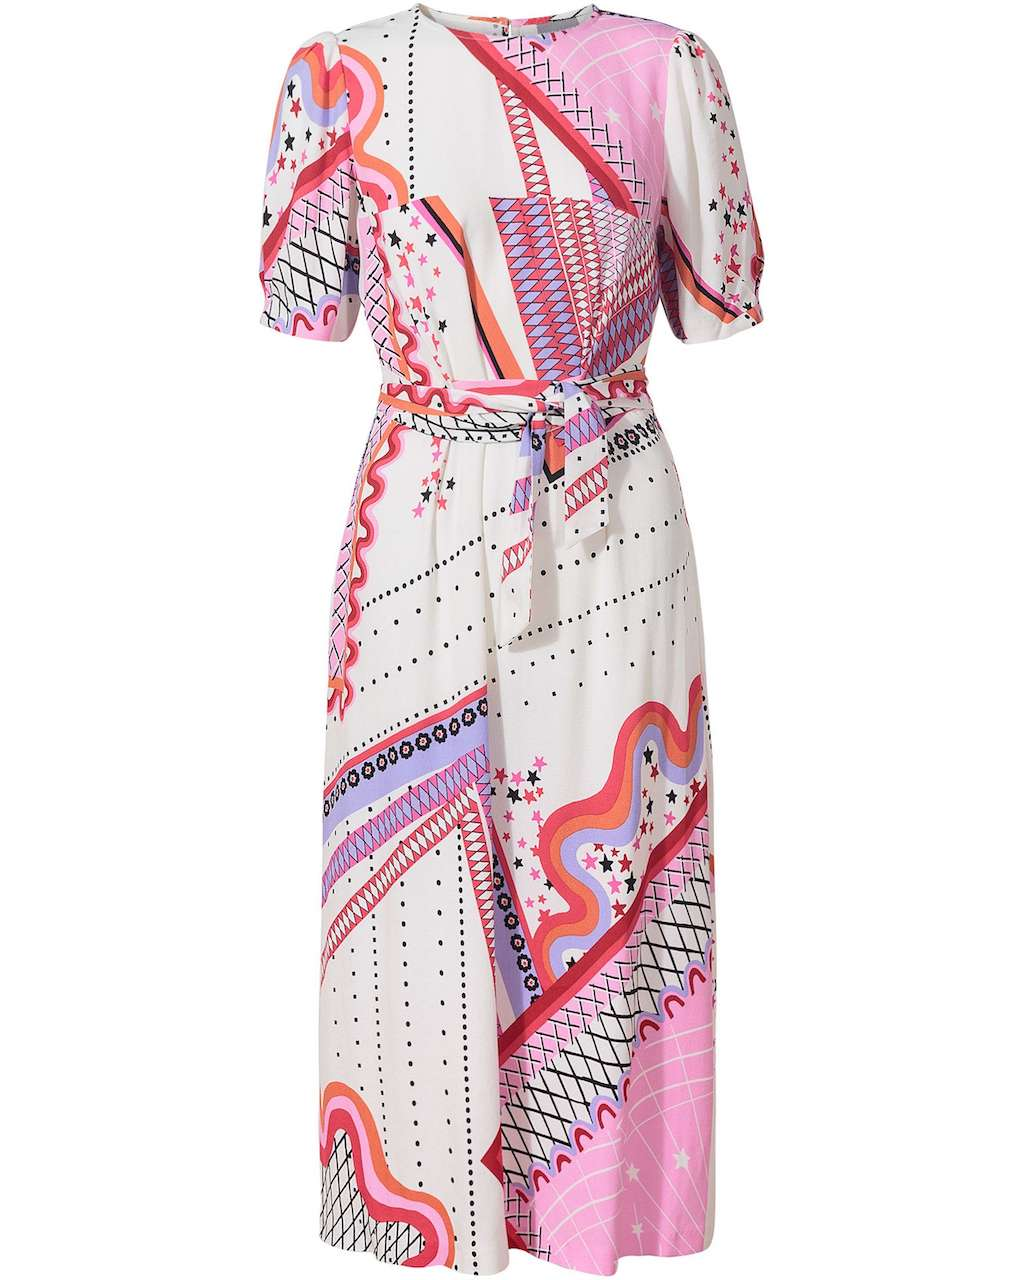 Oliver Bonas, Mix & Match Star Print White Midi Dress, £75